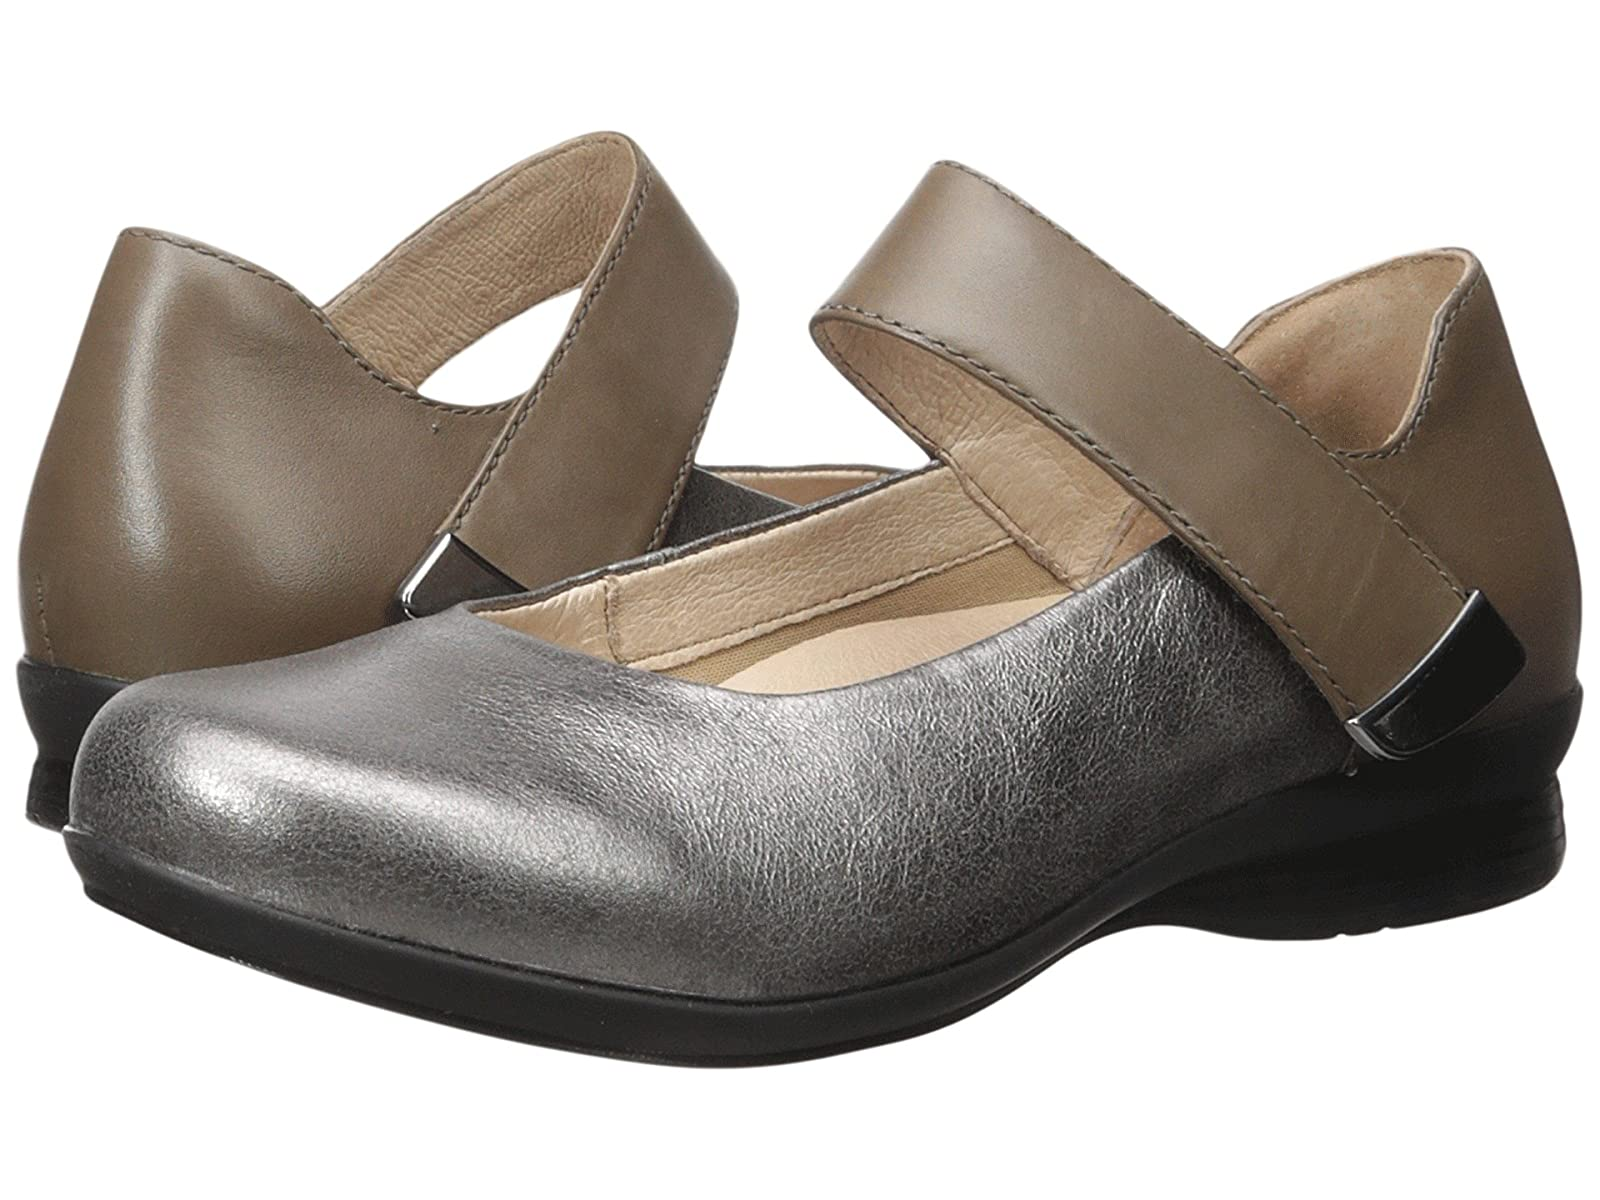 Dansko AudreyCheap and distinctive eye-catching shoes